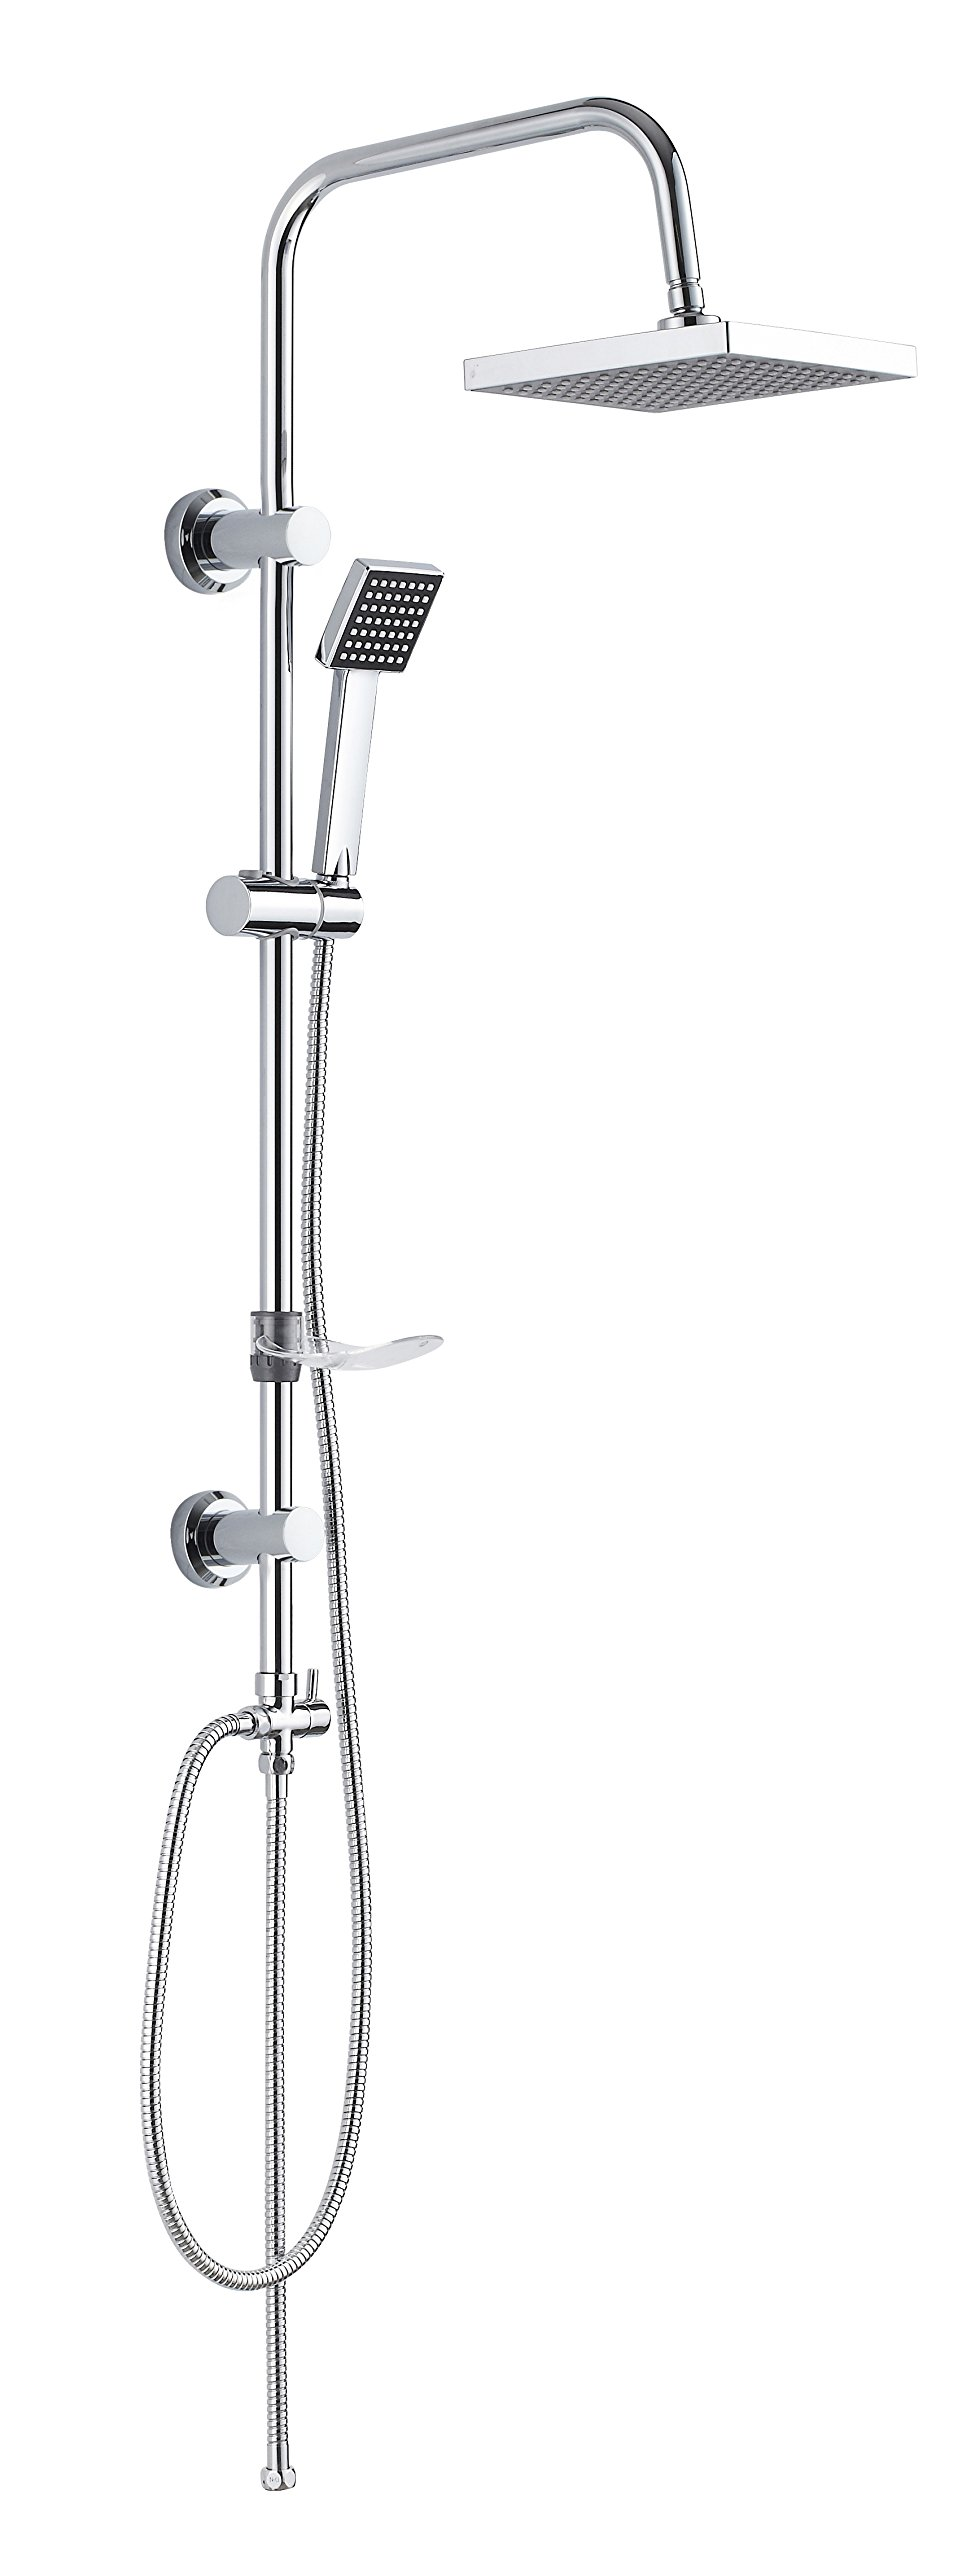 Shower Head and Hose Set and Taps: Amazon.co.uk